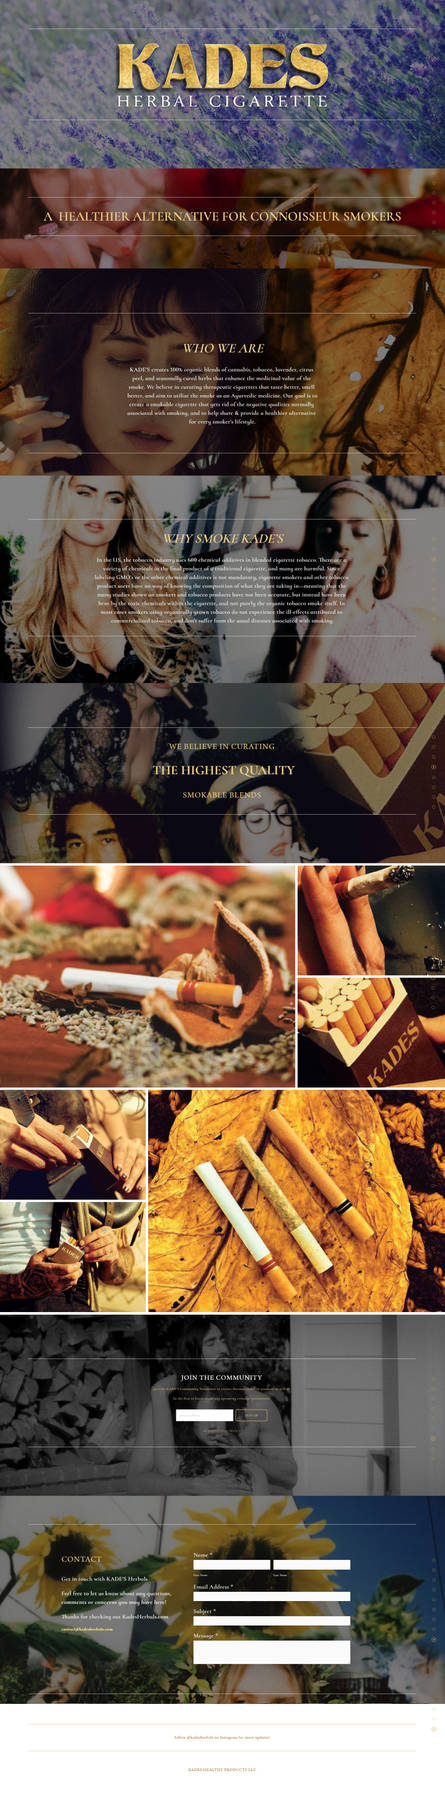 KADES HERBAL CIGARETTE WEBSITE SNAPSHOT by ZelnickDesigns